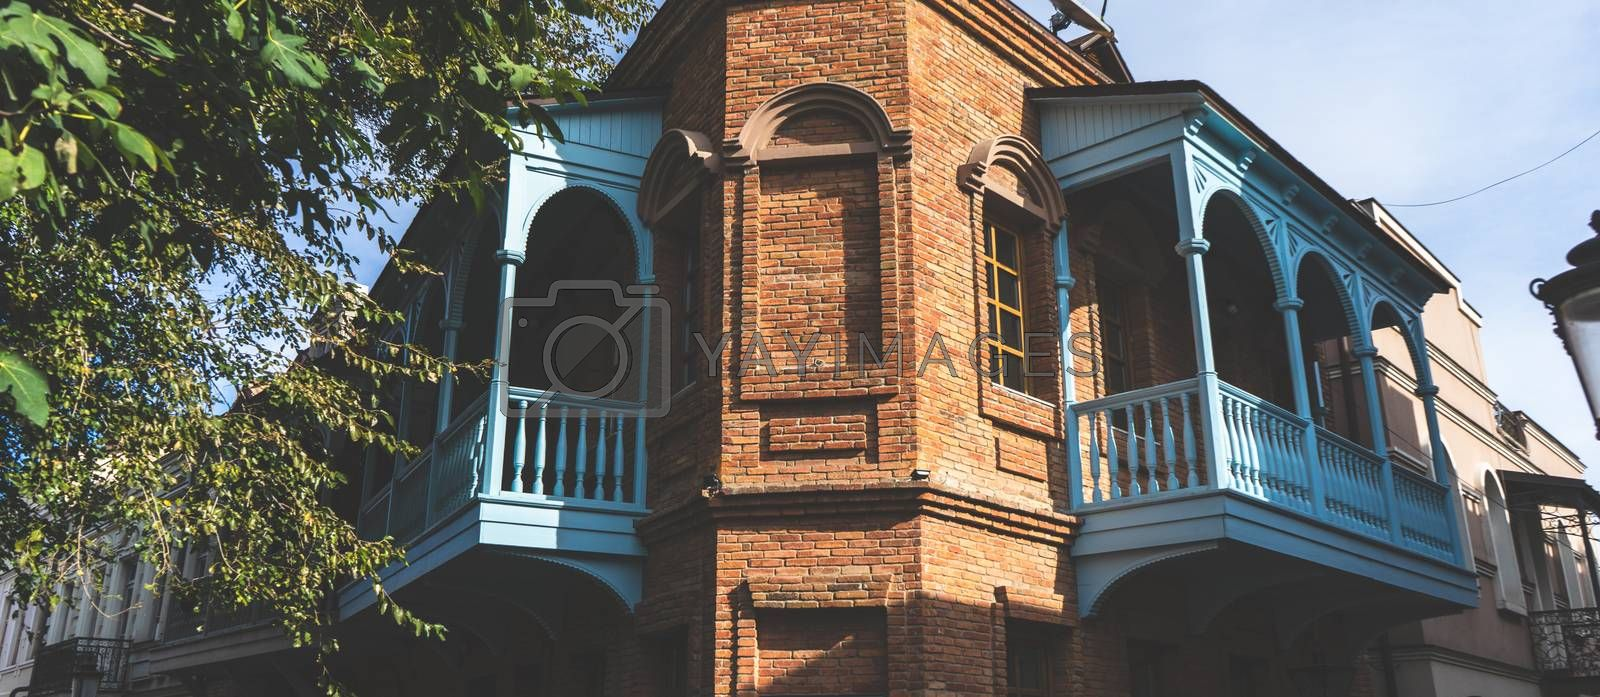 Carving balconies of old Tbilisi, traditional view of streets